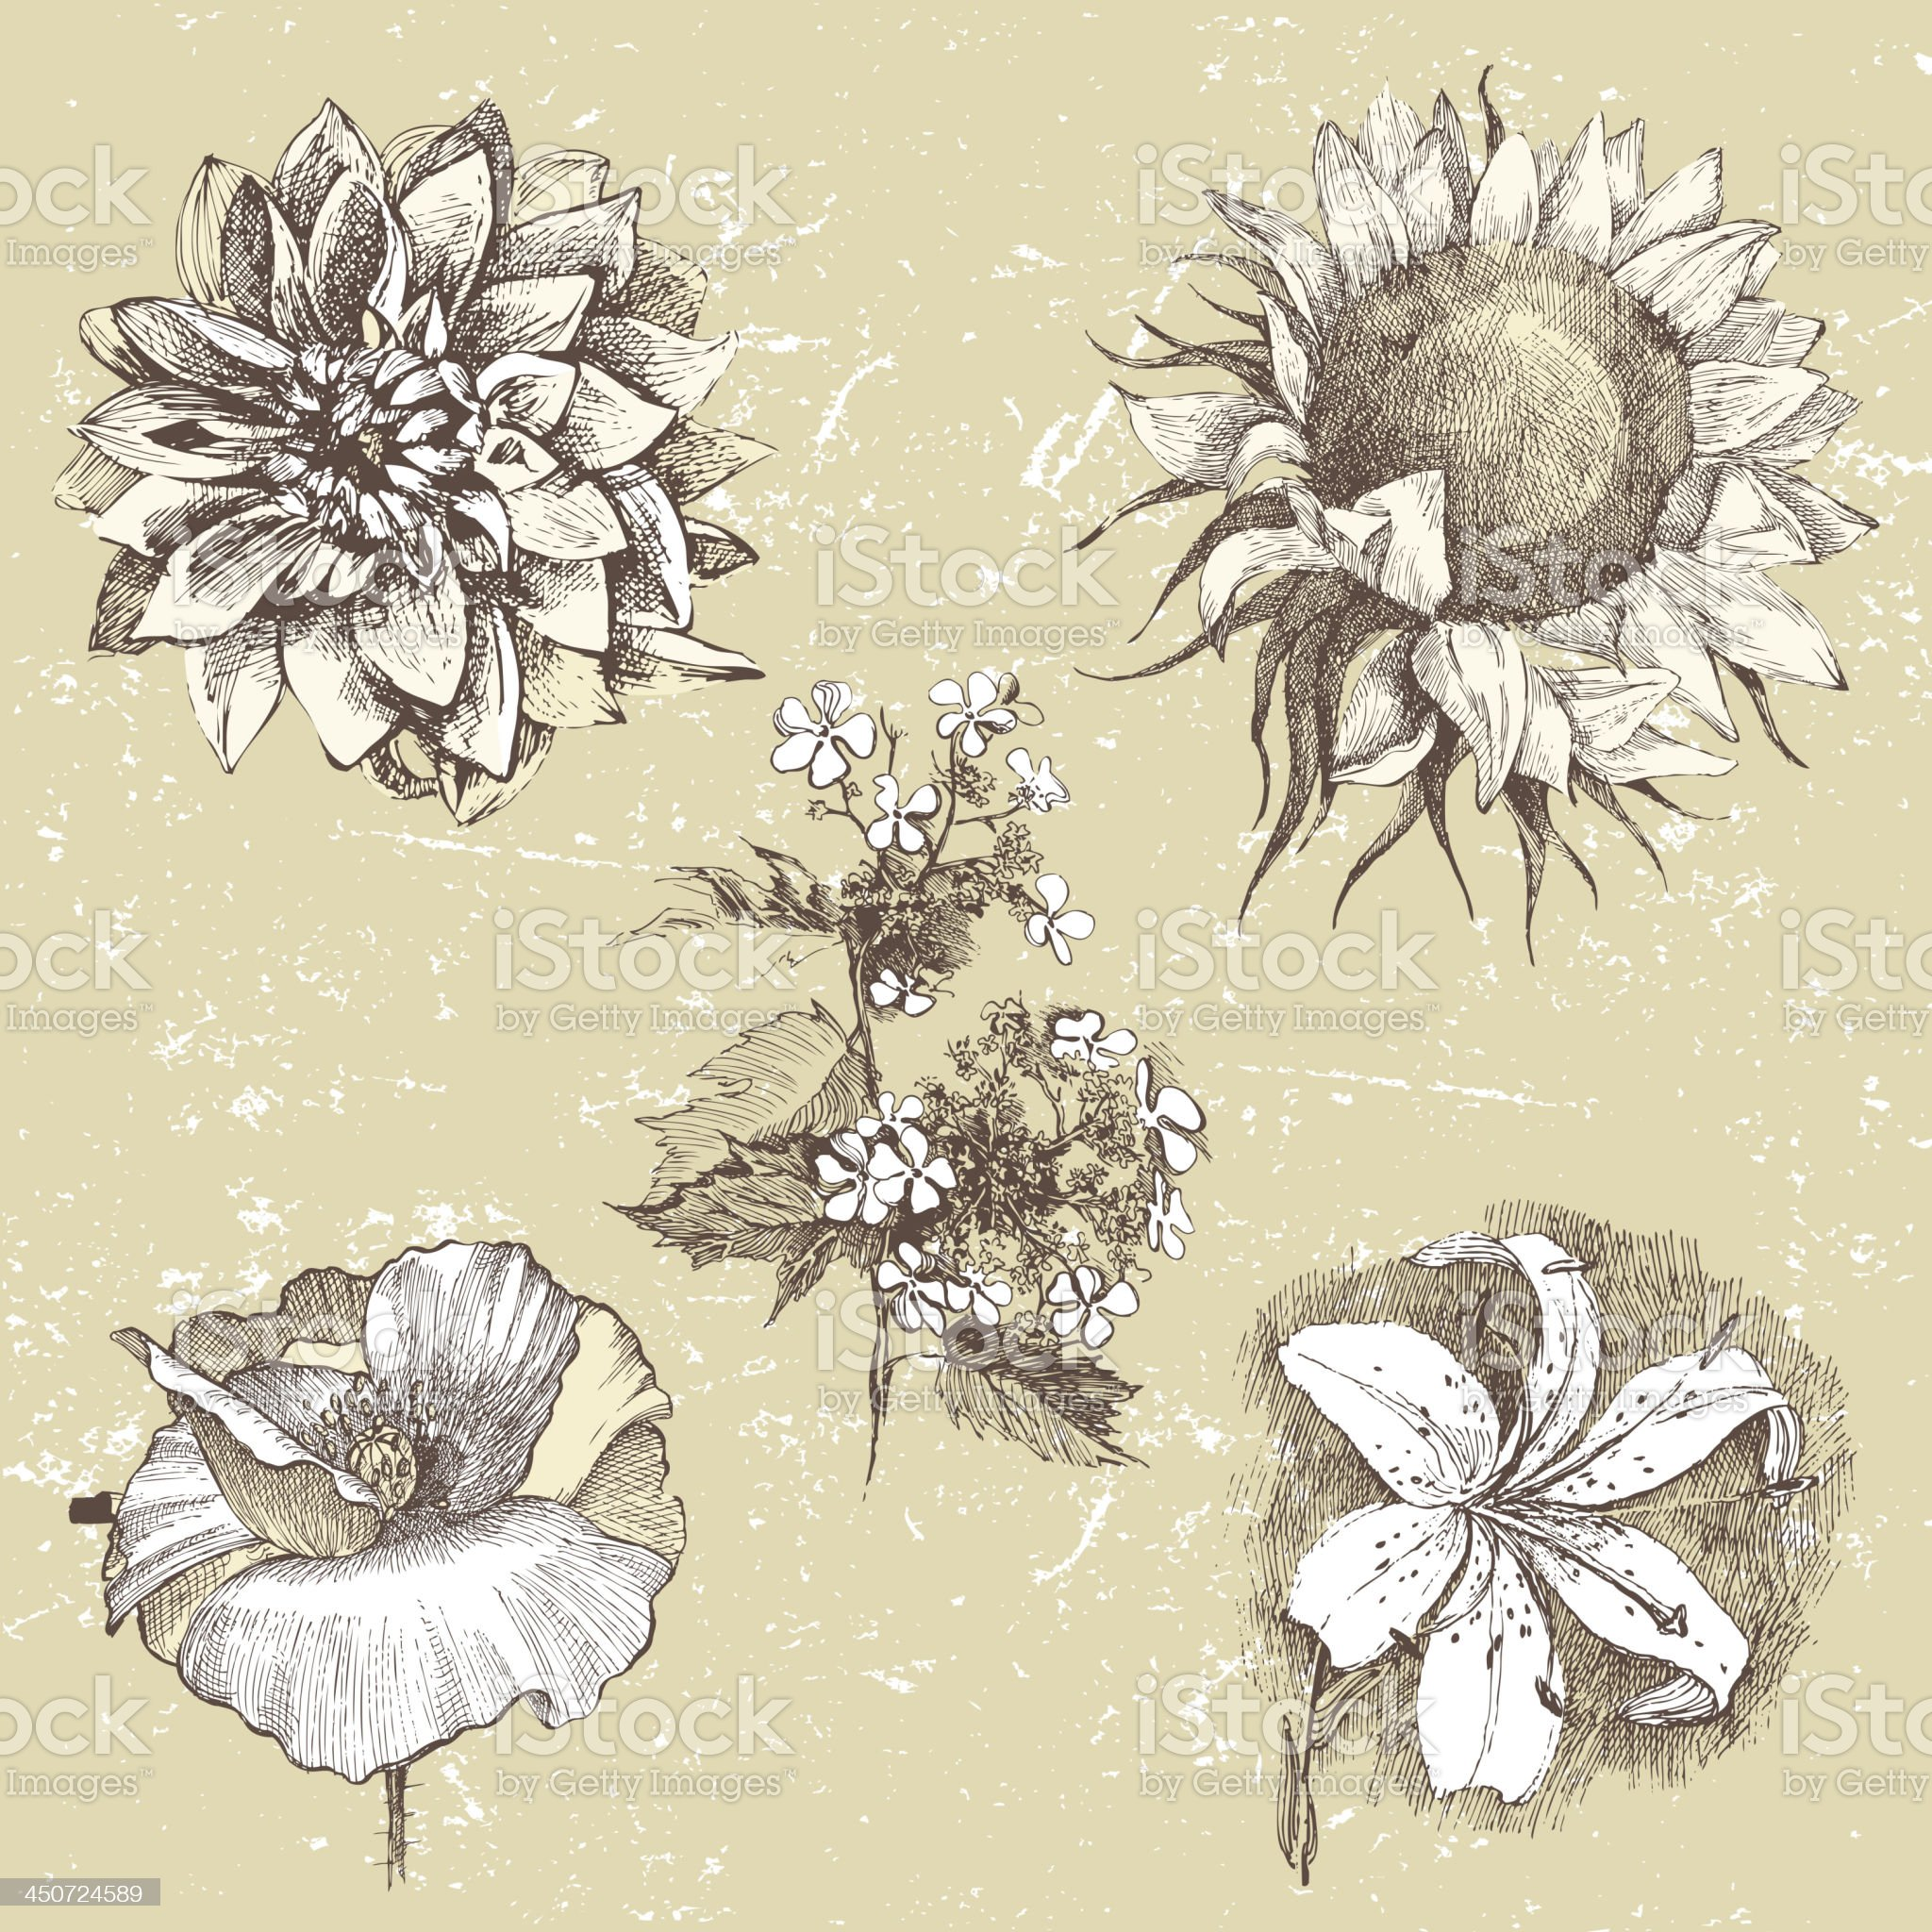 Hand drawn flowers royalty-free stock vector art